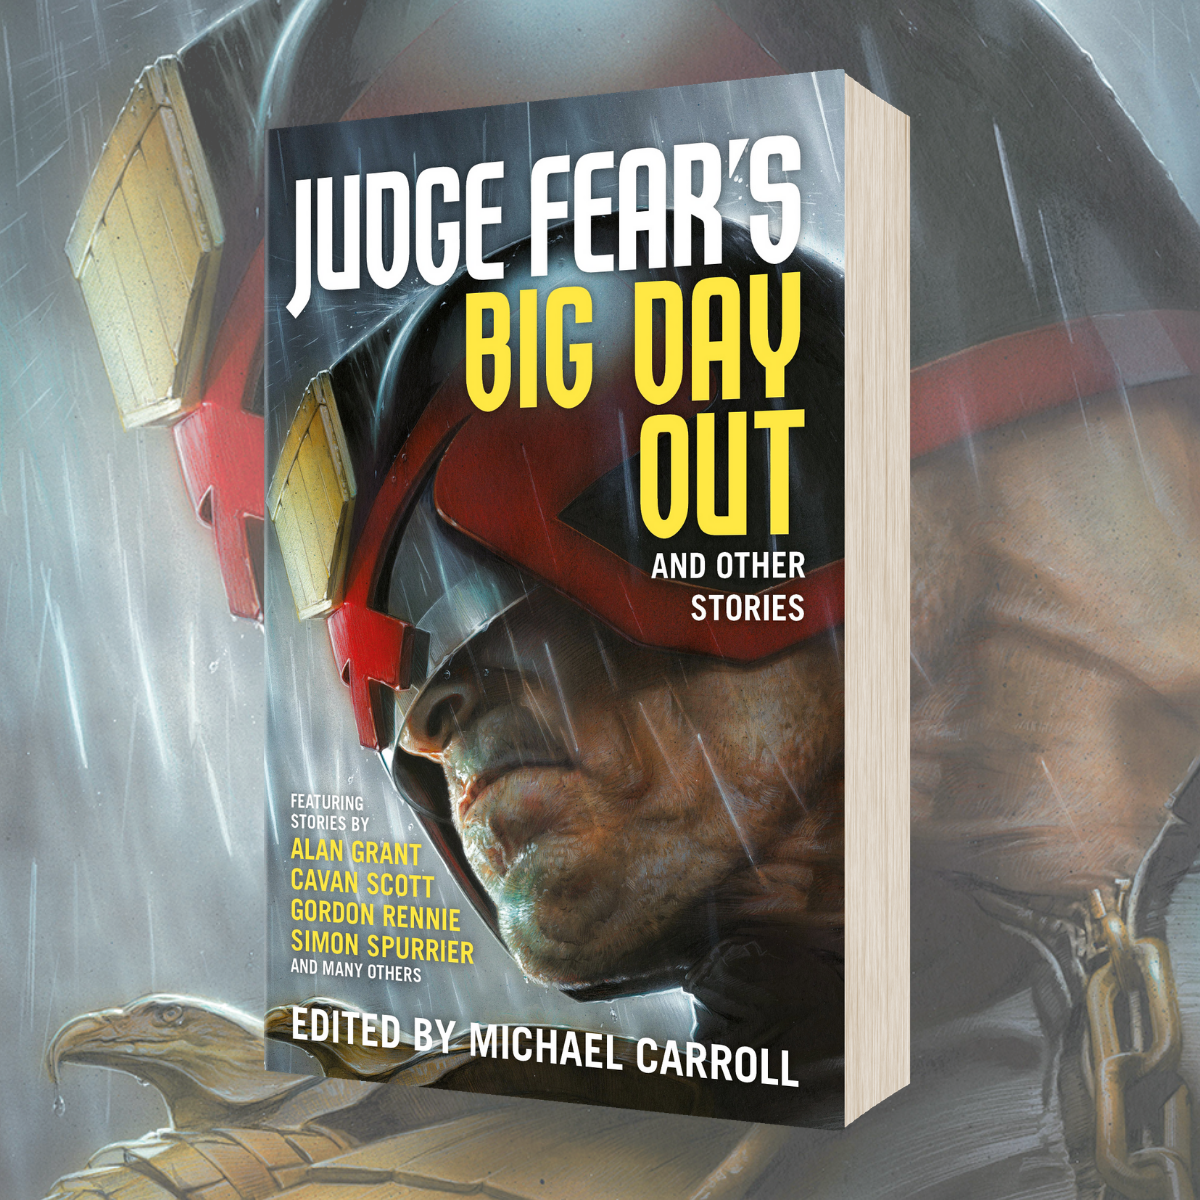 OUT NOW: Judge Fear's Big Day Out and Other Stories